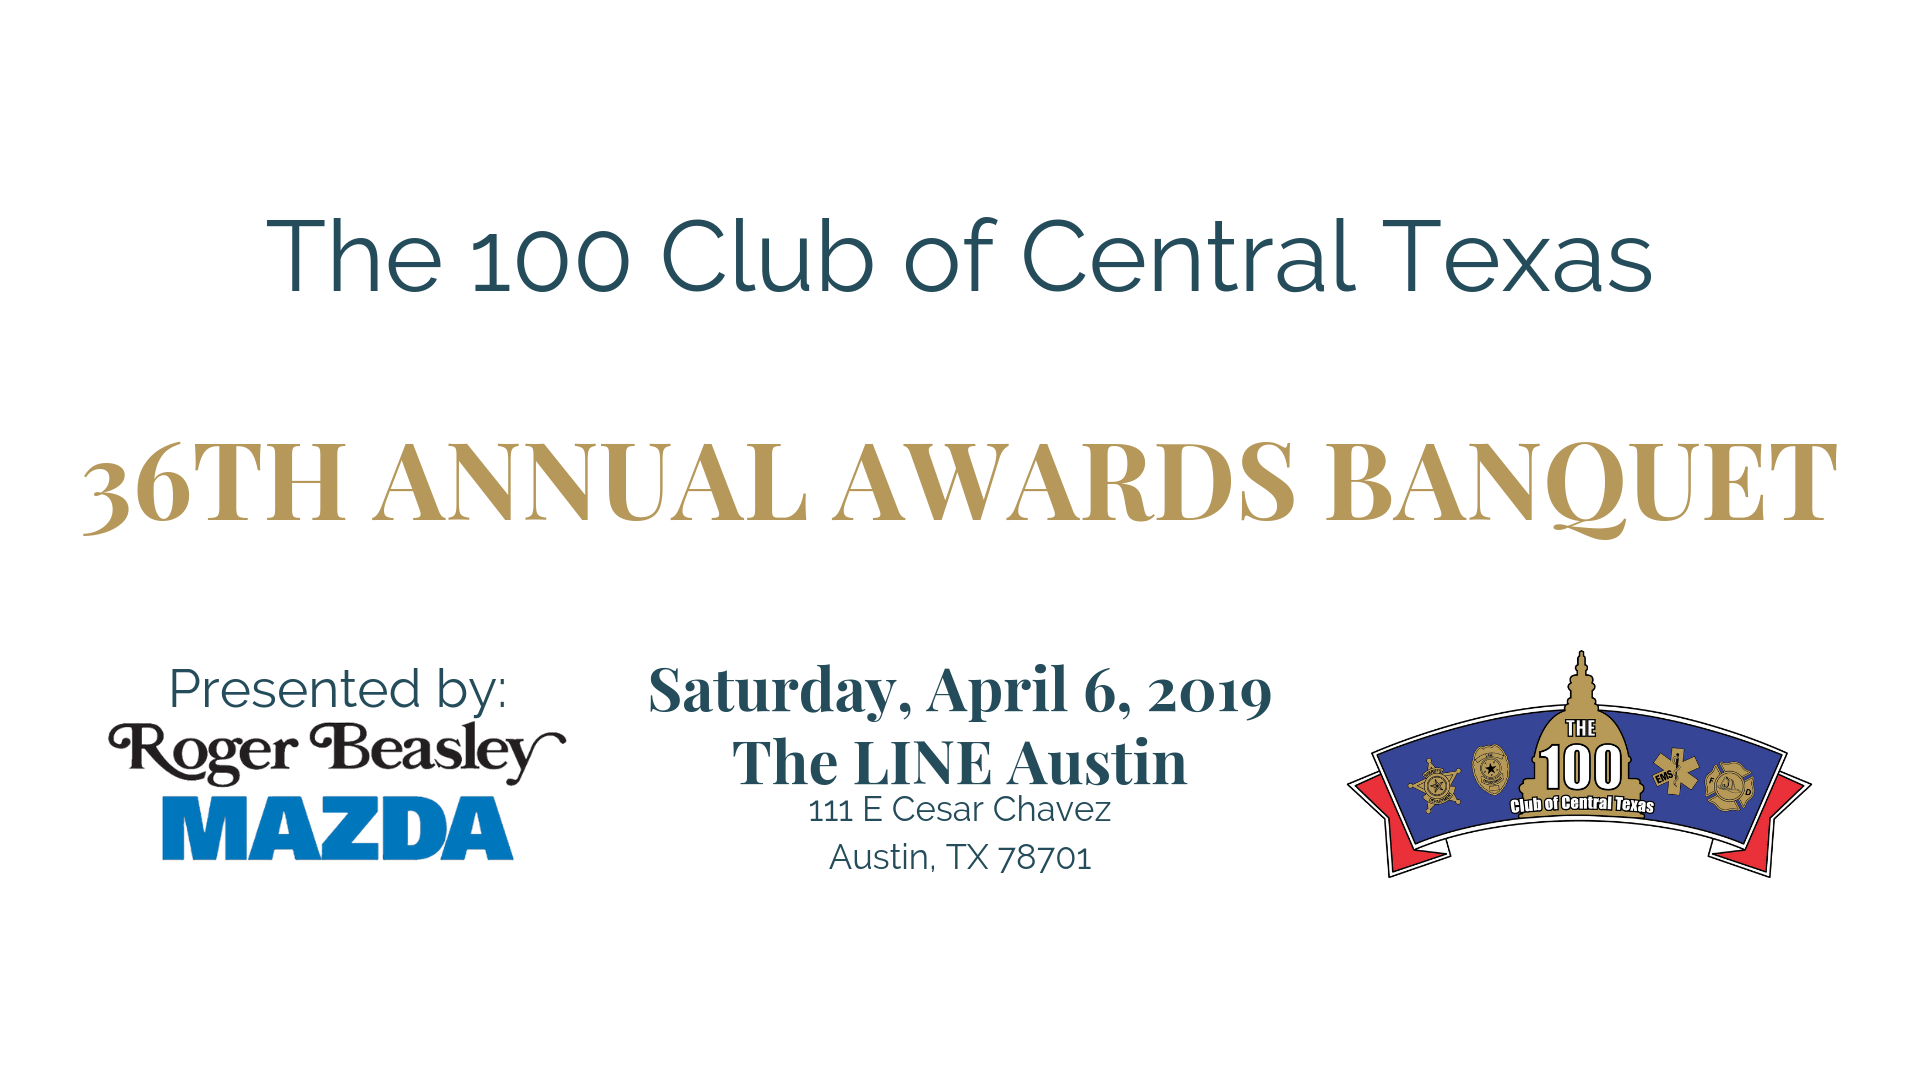 Roger Beasley Mazda Central >> Annual Awards Banquet | The 100 Club of Central Texas